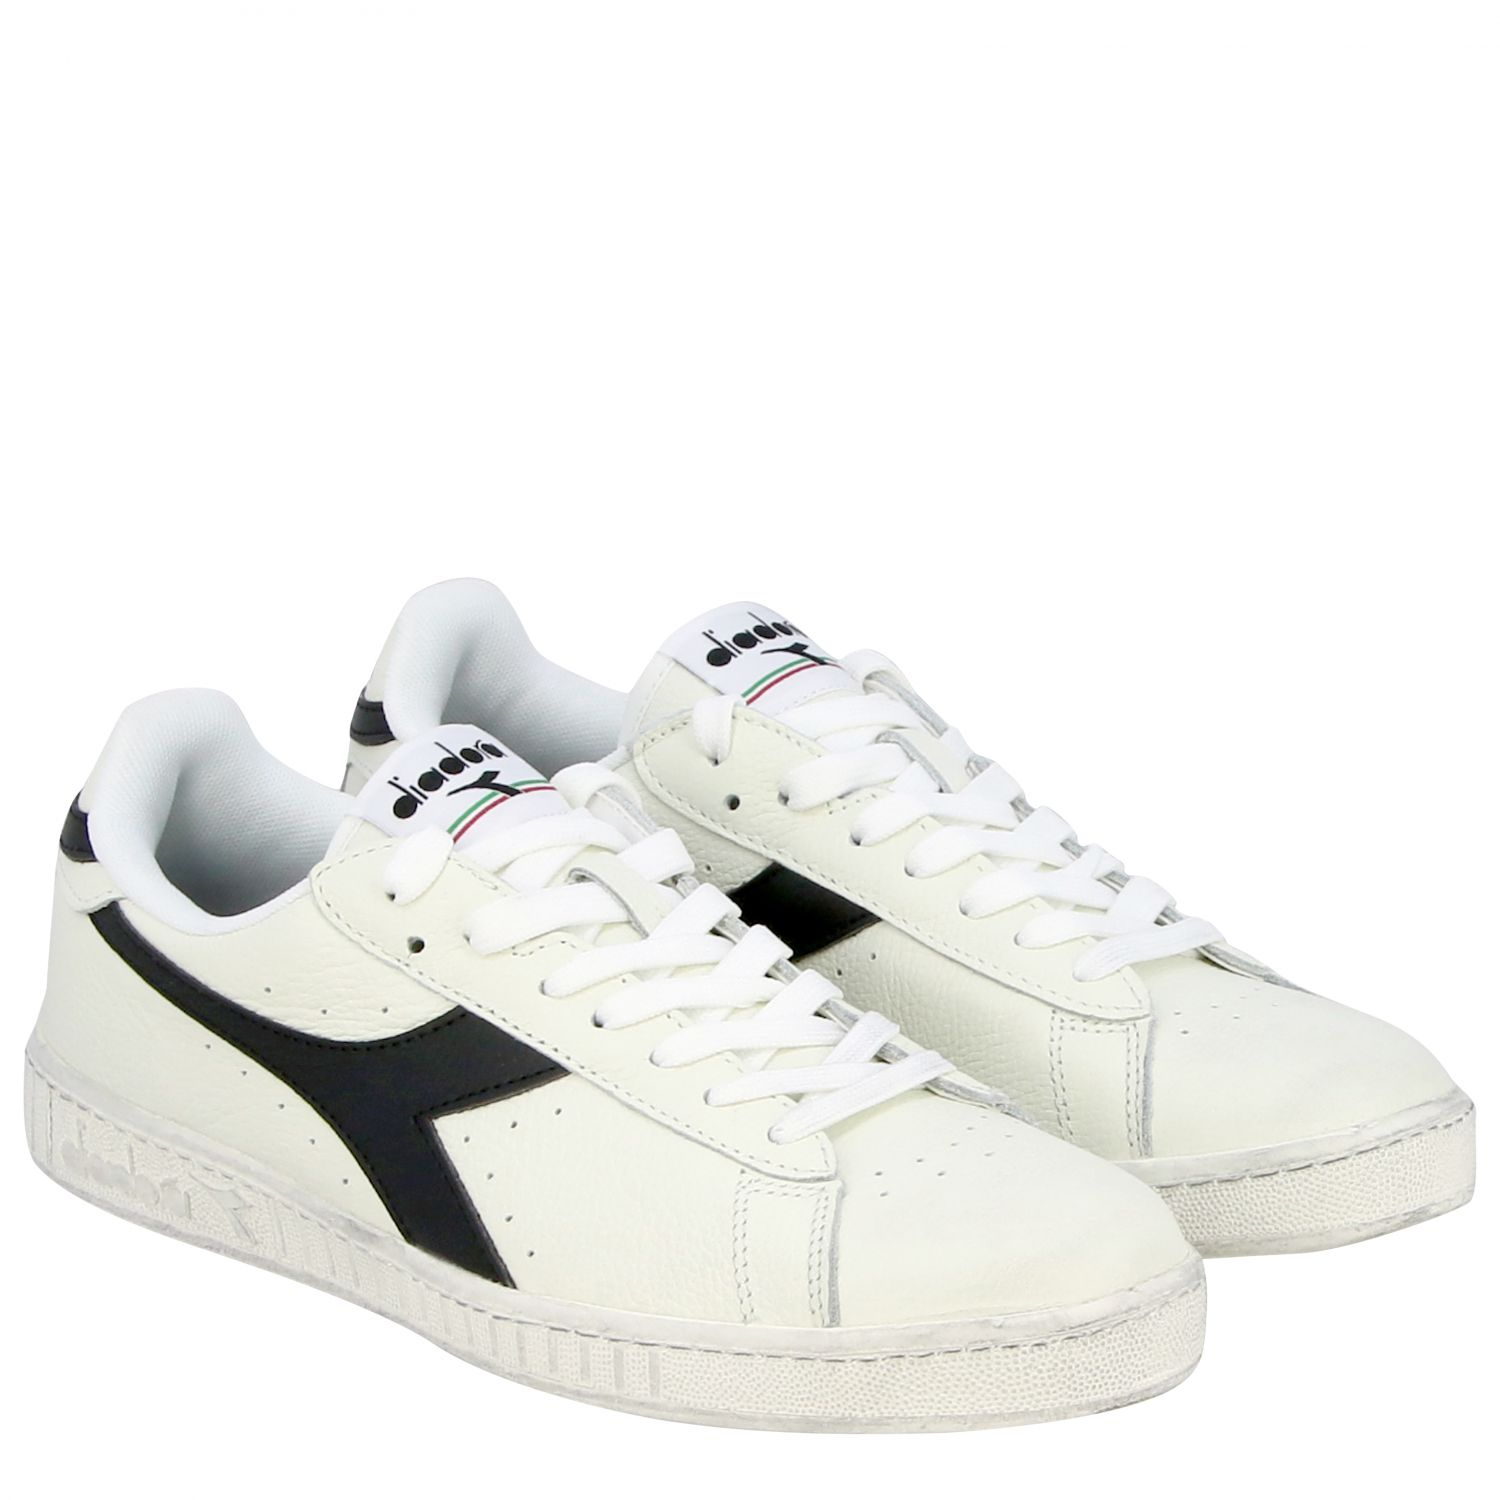 Sneakers Diadora: Diadora Game l low waxed sneakers in textured leather white 1 2